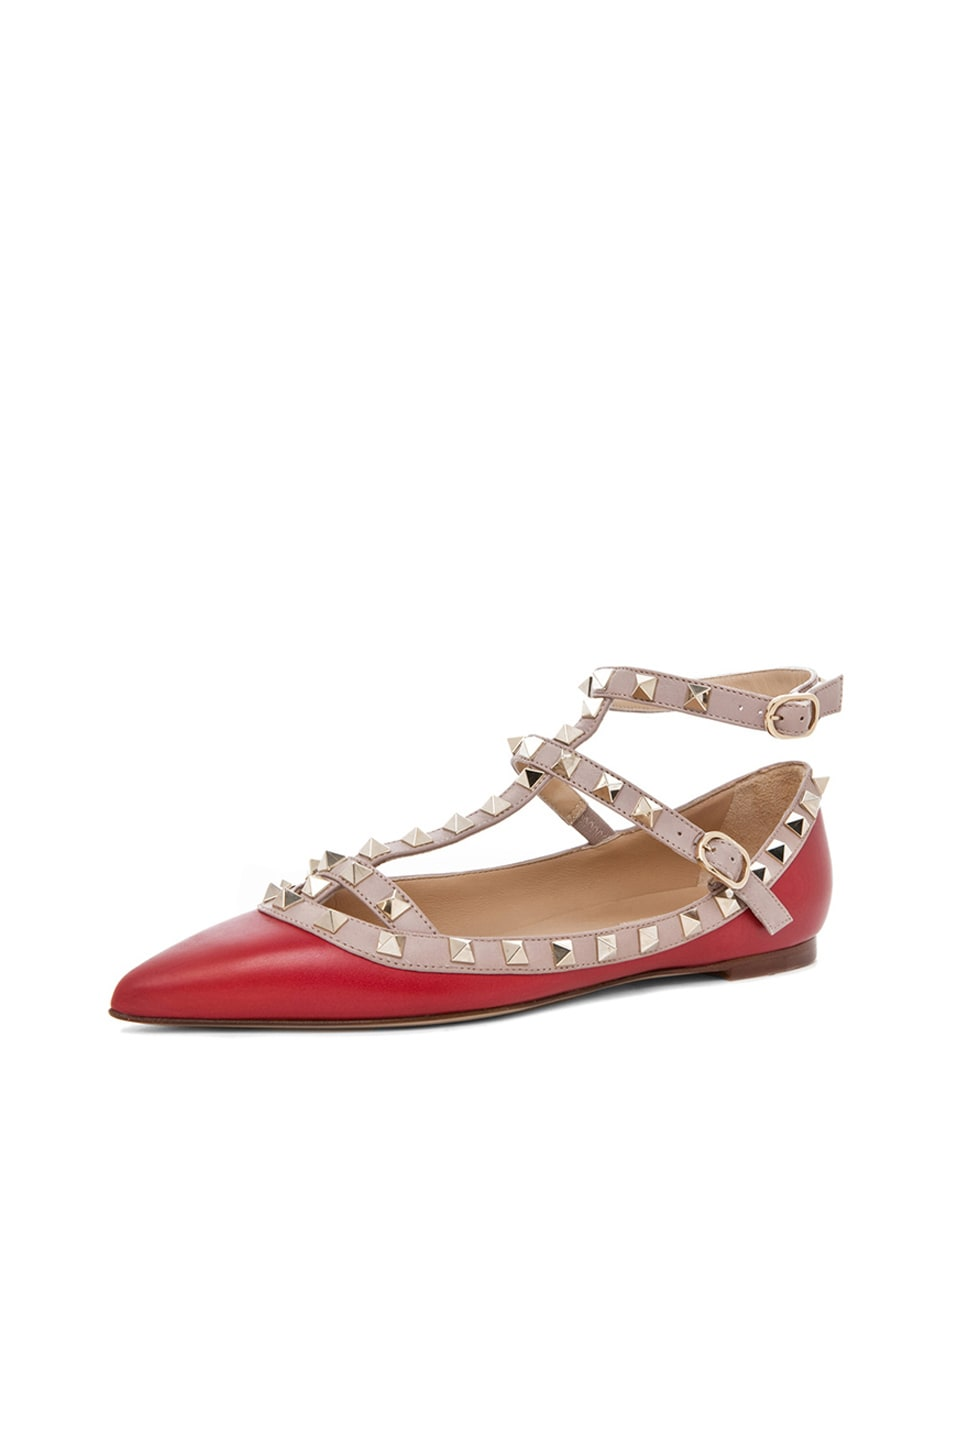 Image 2 of Valentino Rockstud Leather Cage Flats in Red